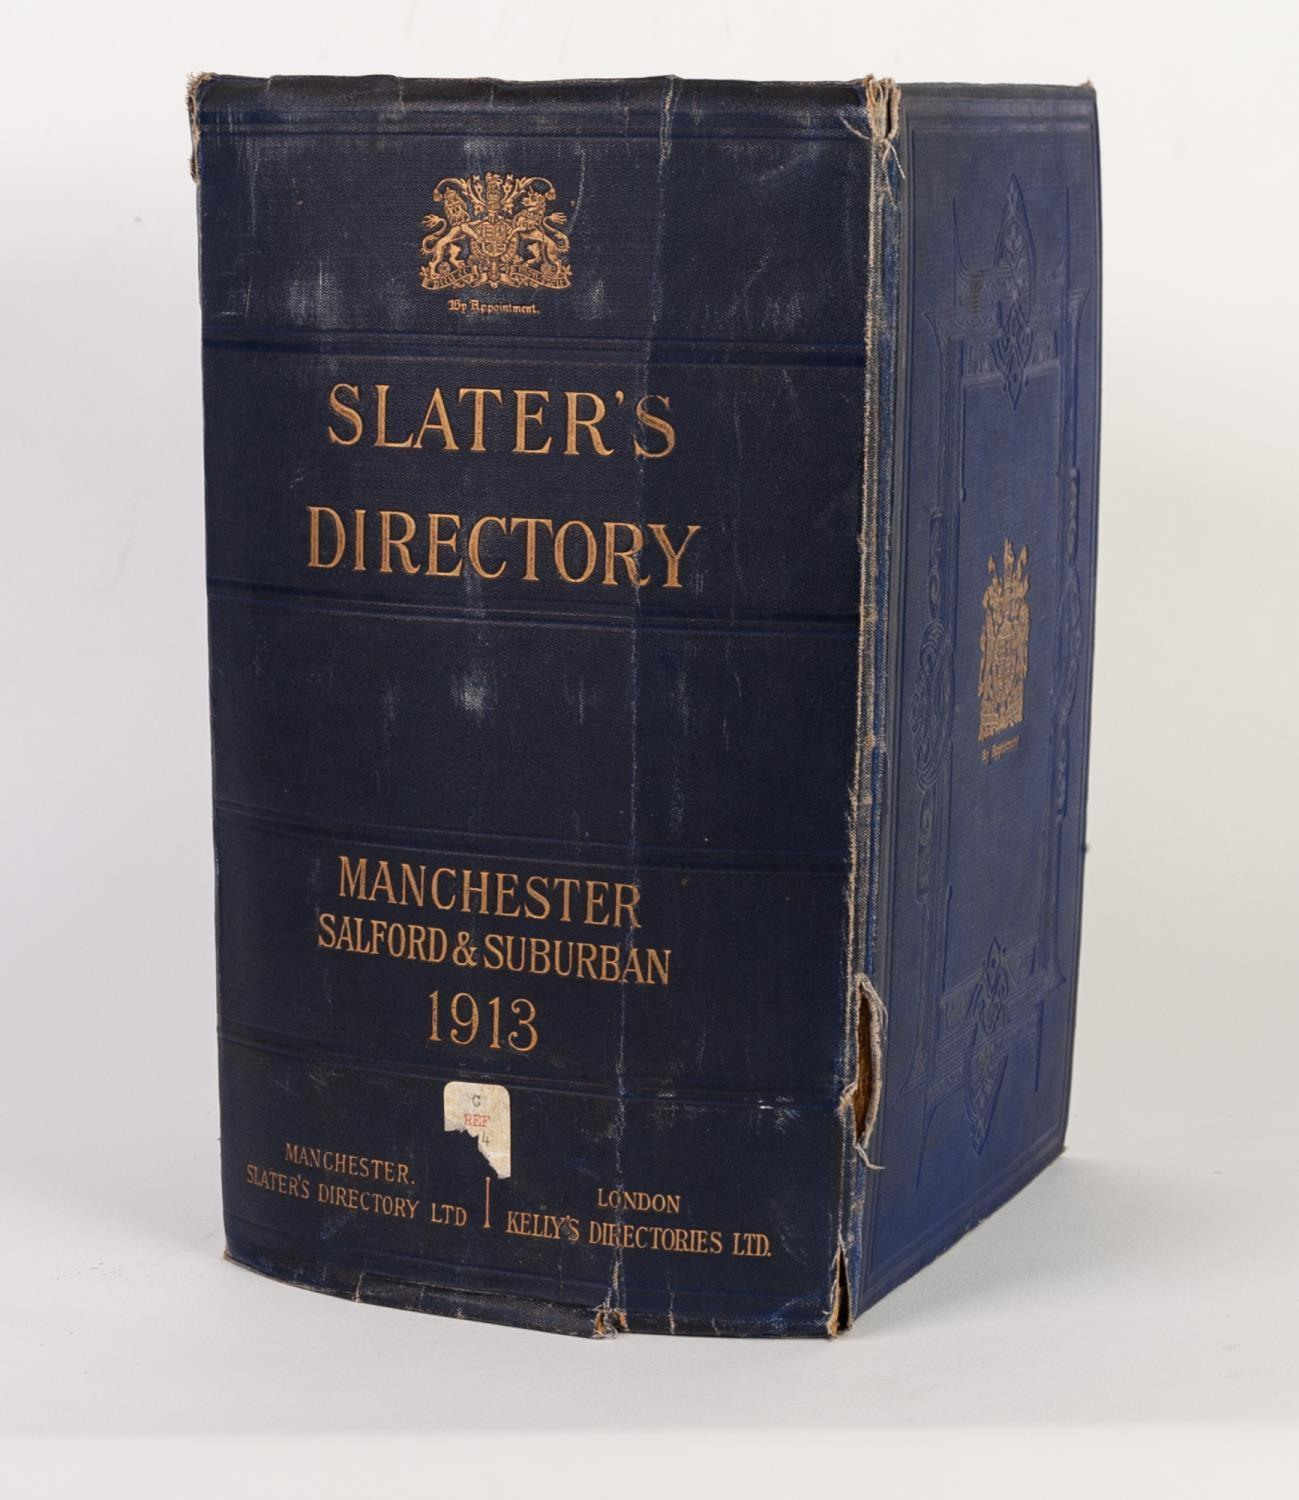 Lot 36 - SLATERS MANCHESTER SALFORD AND SUBURBAN DIRECTORY, with plan of Manchester, without the map of the